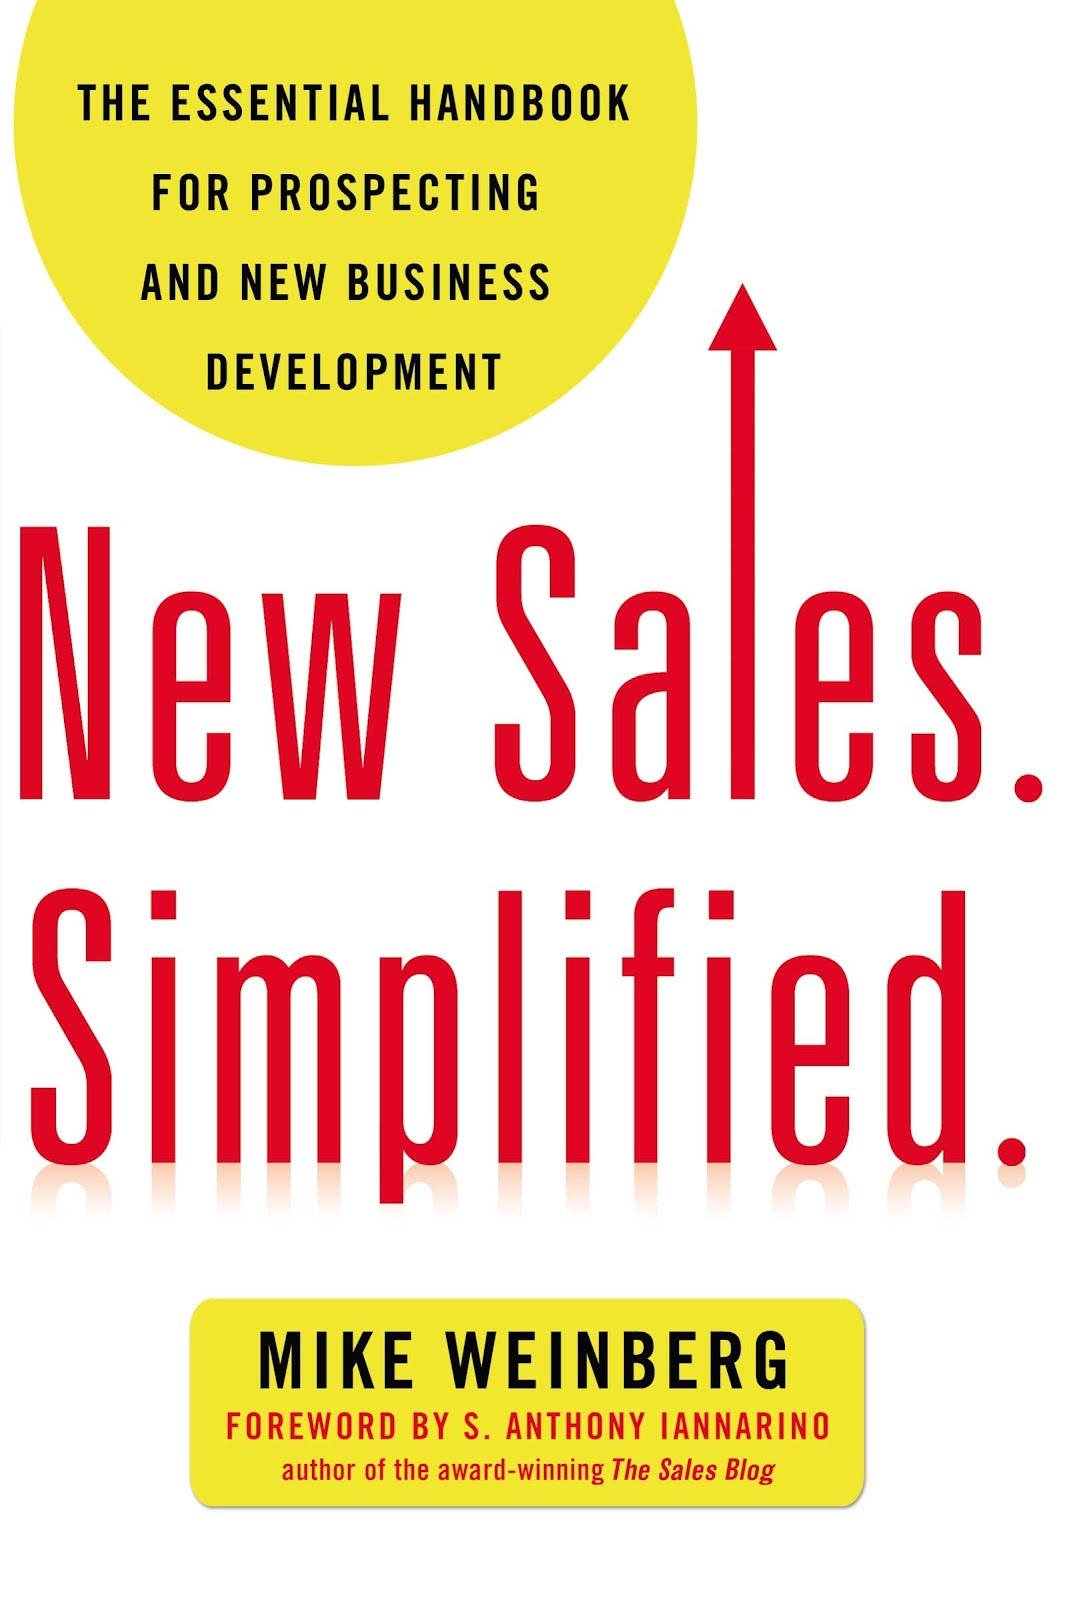 New Sales. Simplified: The Essential Handbook for Prospecting and New Business Development sales book.